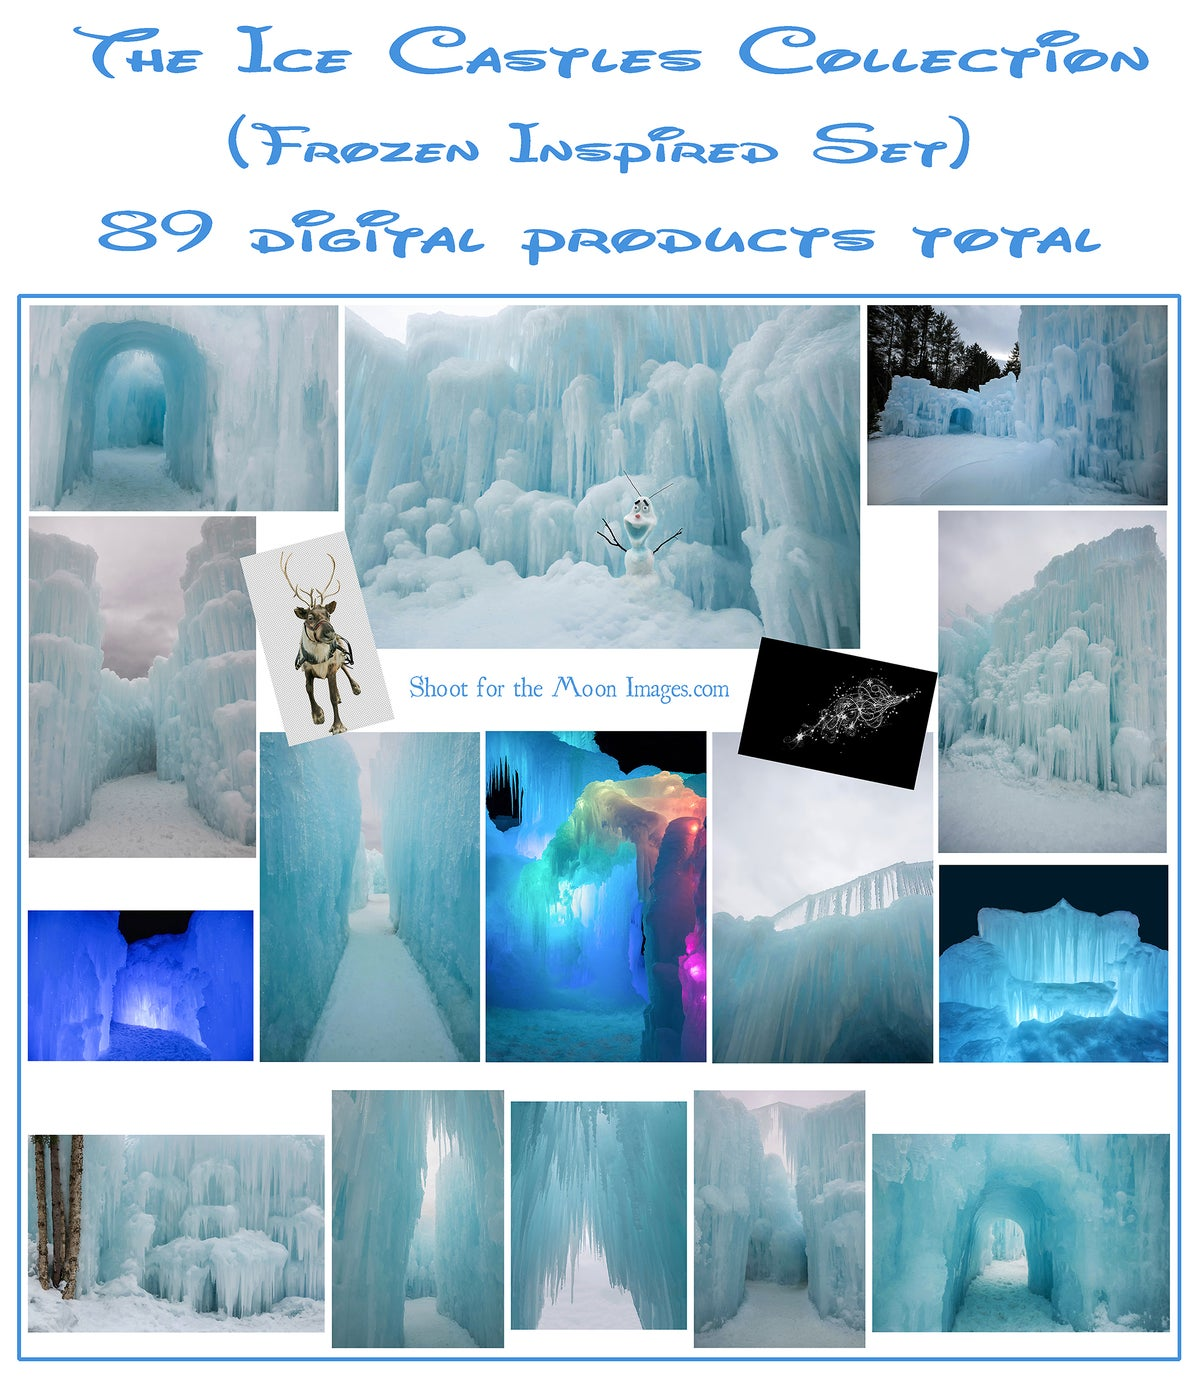 Image of The Ice Castles Collection